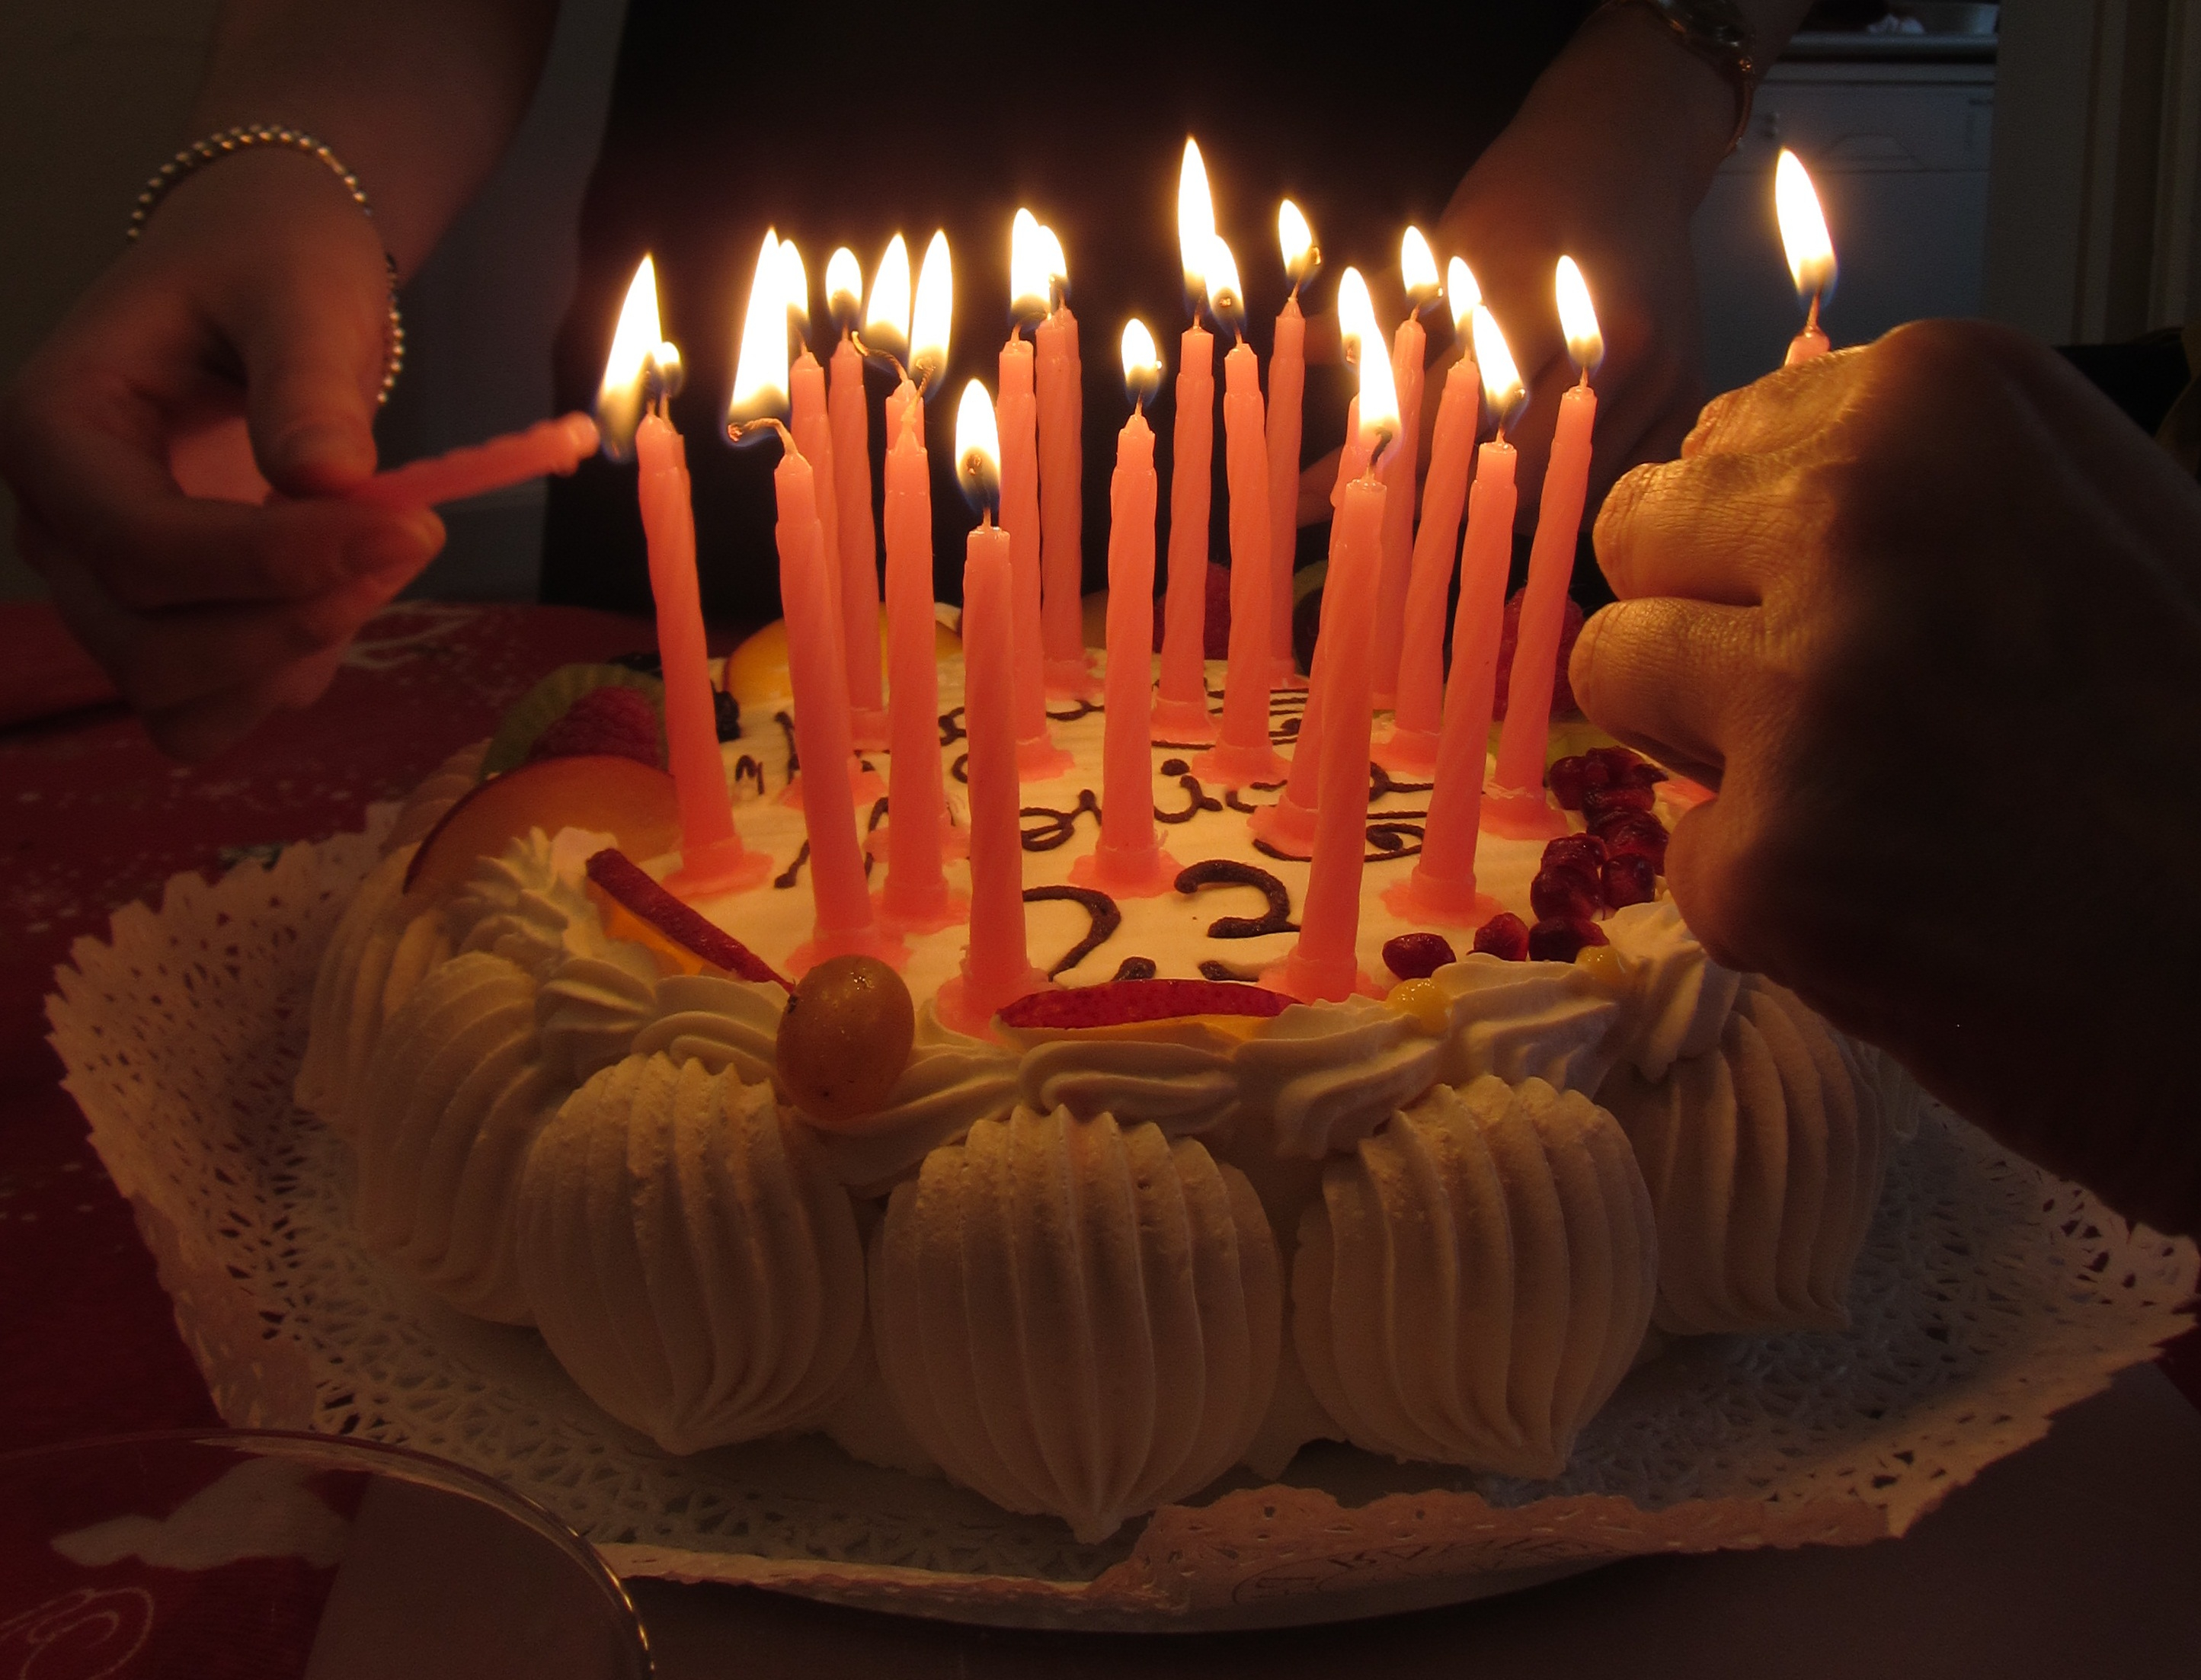 Birthday Cakes With Candles Fileitaly Birthday Cake With Candles 3 Wikimedia Commons